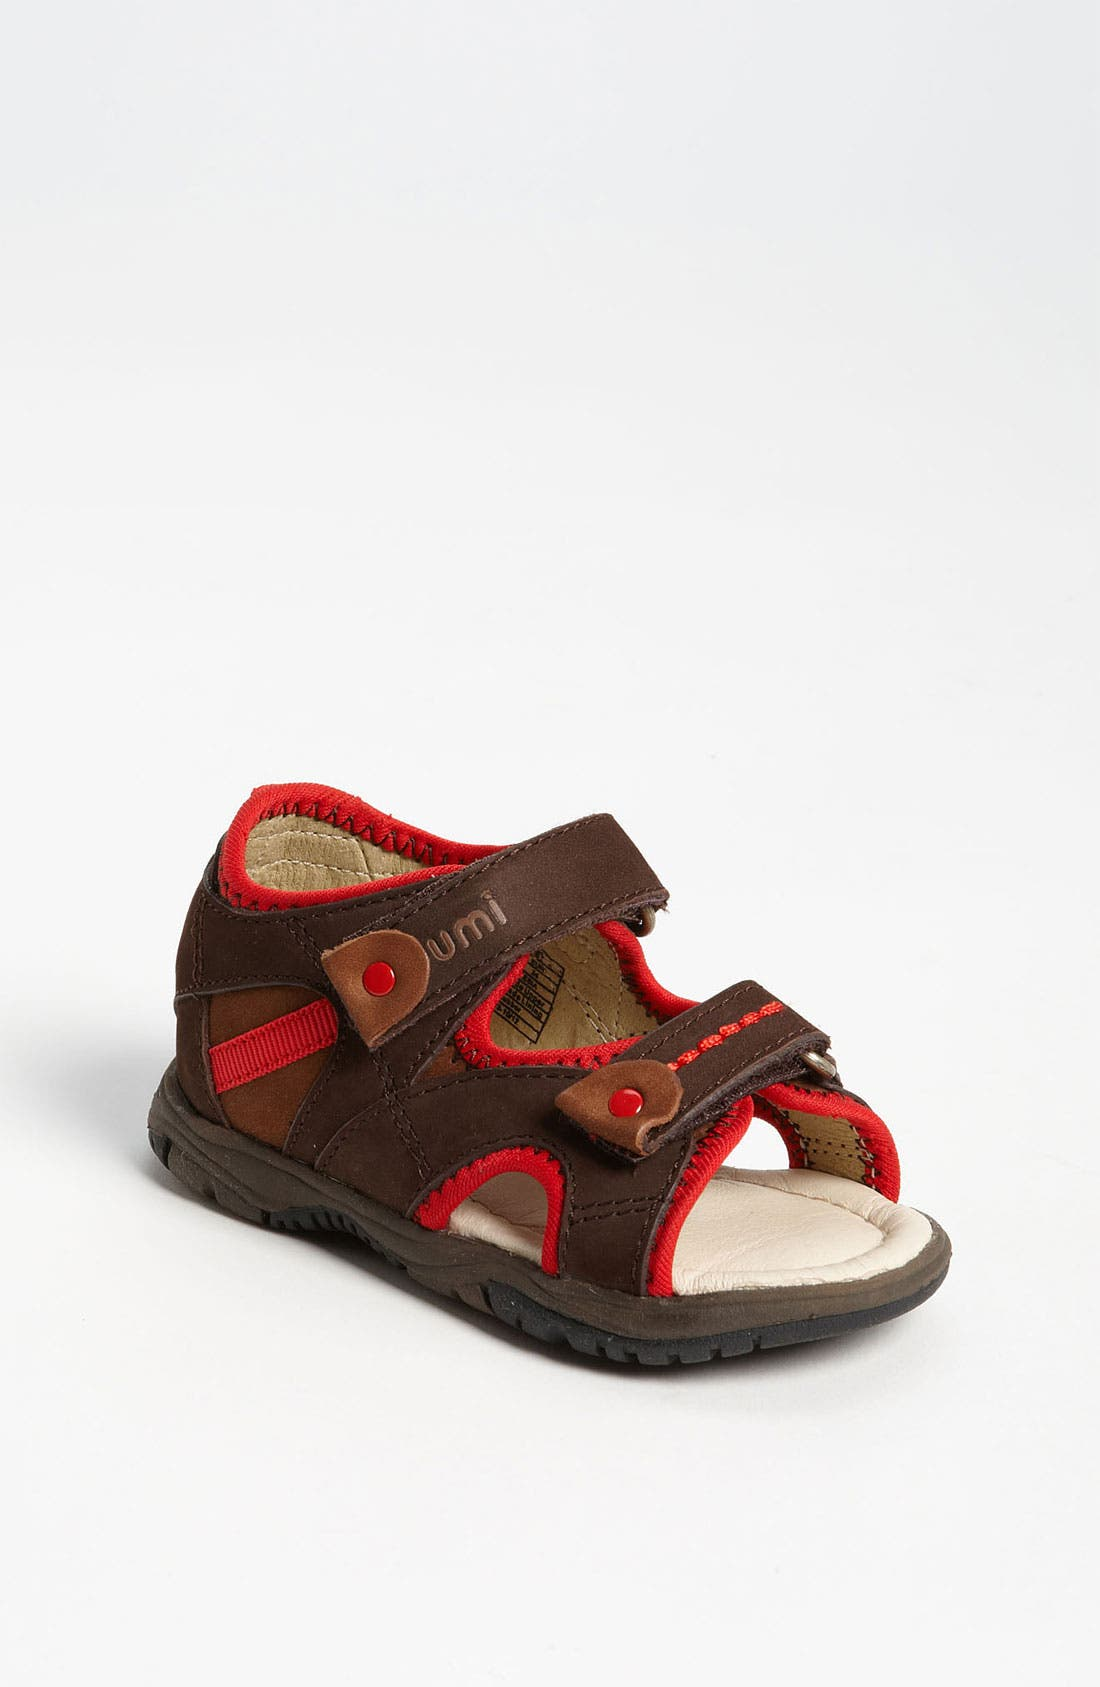 Alternate Image 1 Selected - Umi 'Benet' Sandal (Walker & Toddler)